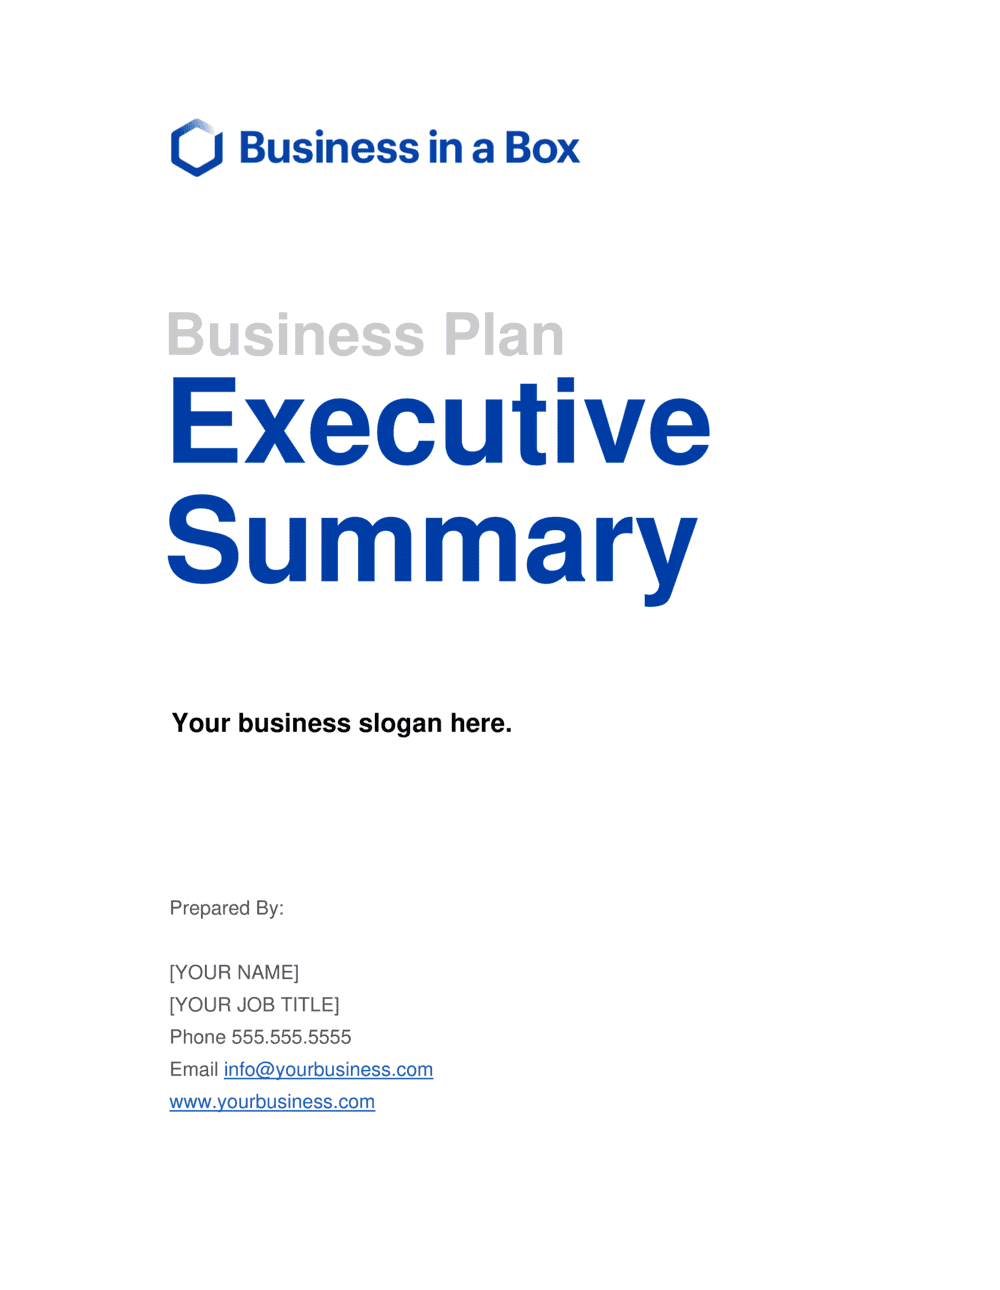 Business-in-a-Box's Executive Summary Template